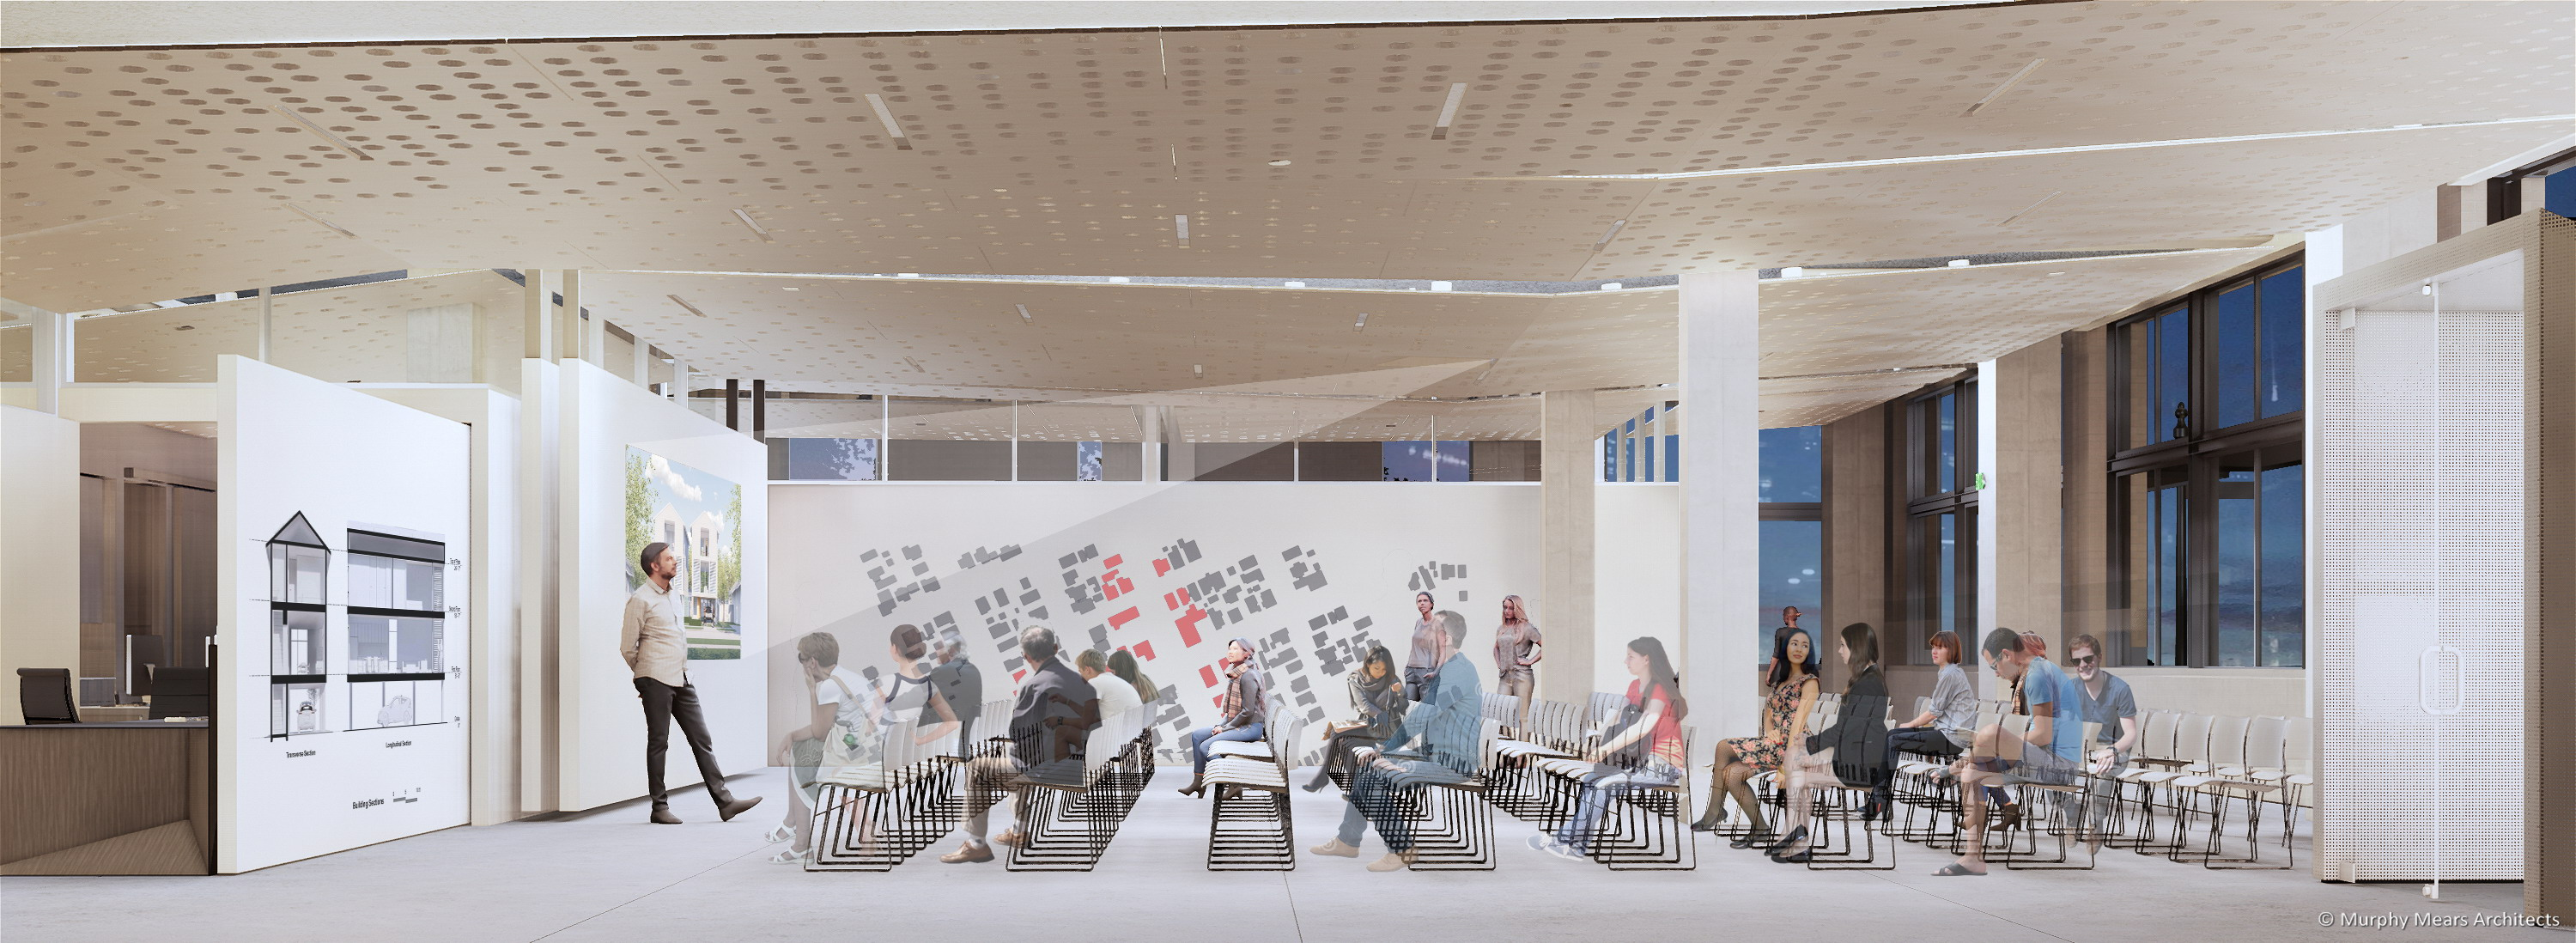 Architecture Center Houston rendering - Street level flexible space with a large lecture event.